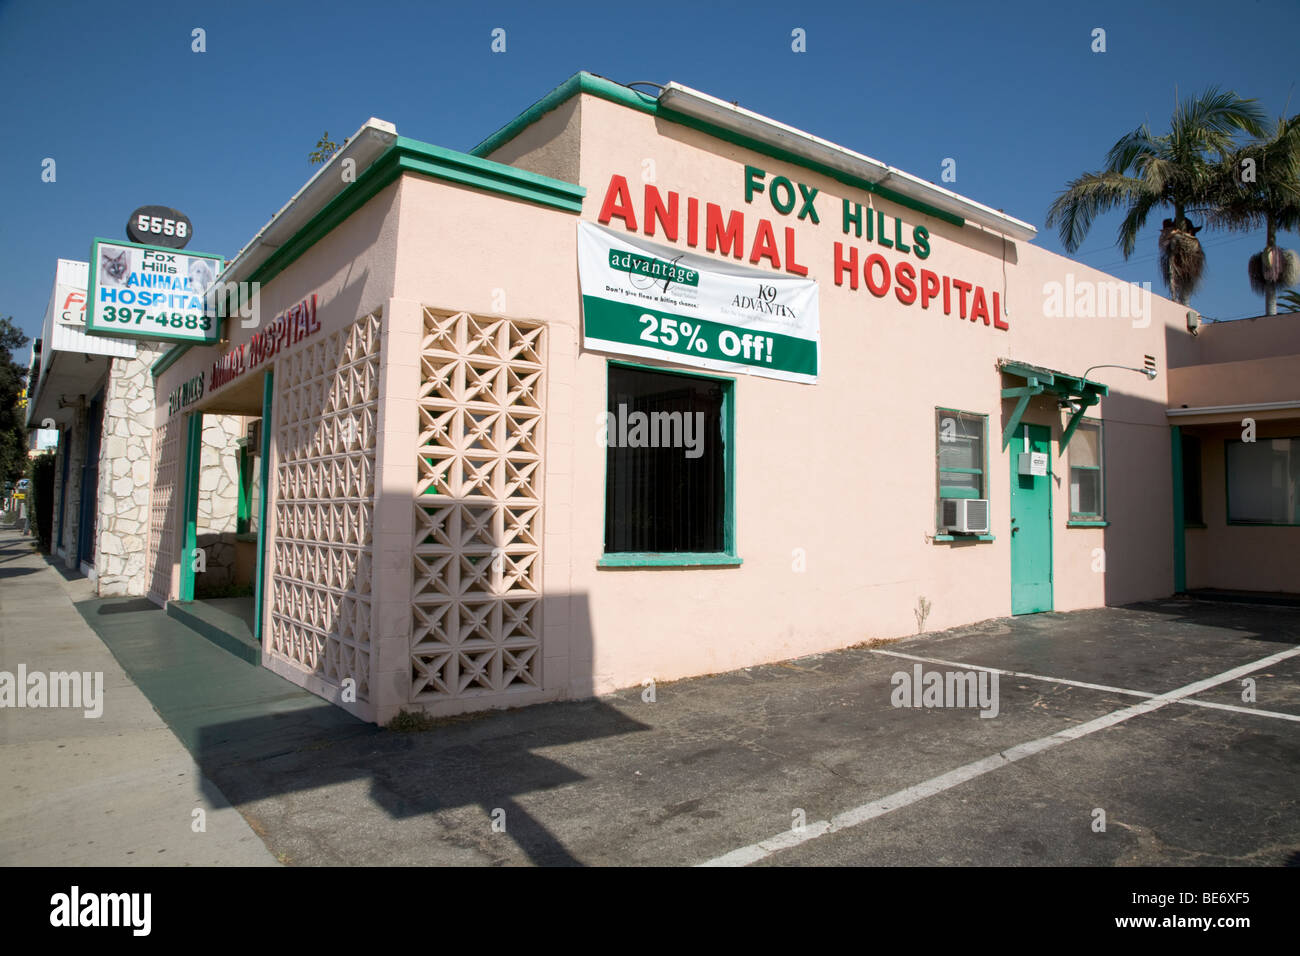 Animal Hospital Surgery For The Treatment Of Sick Animals Los Angeles California - Stock Image